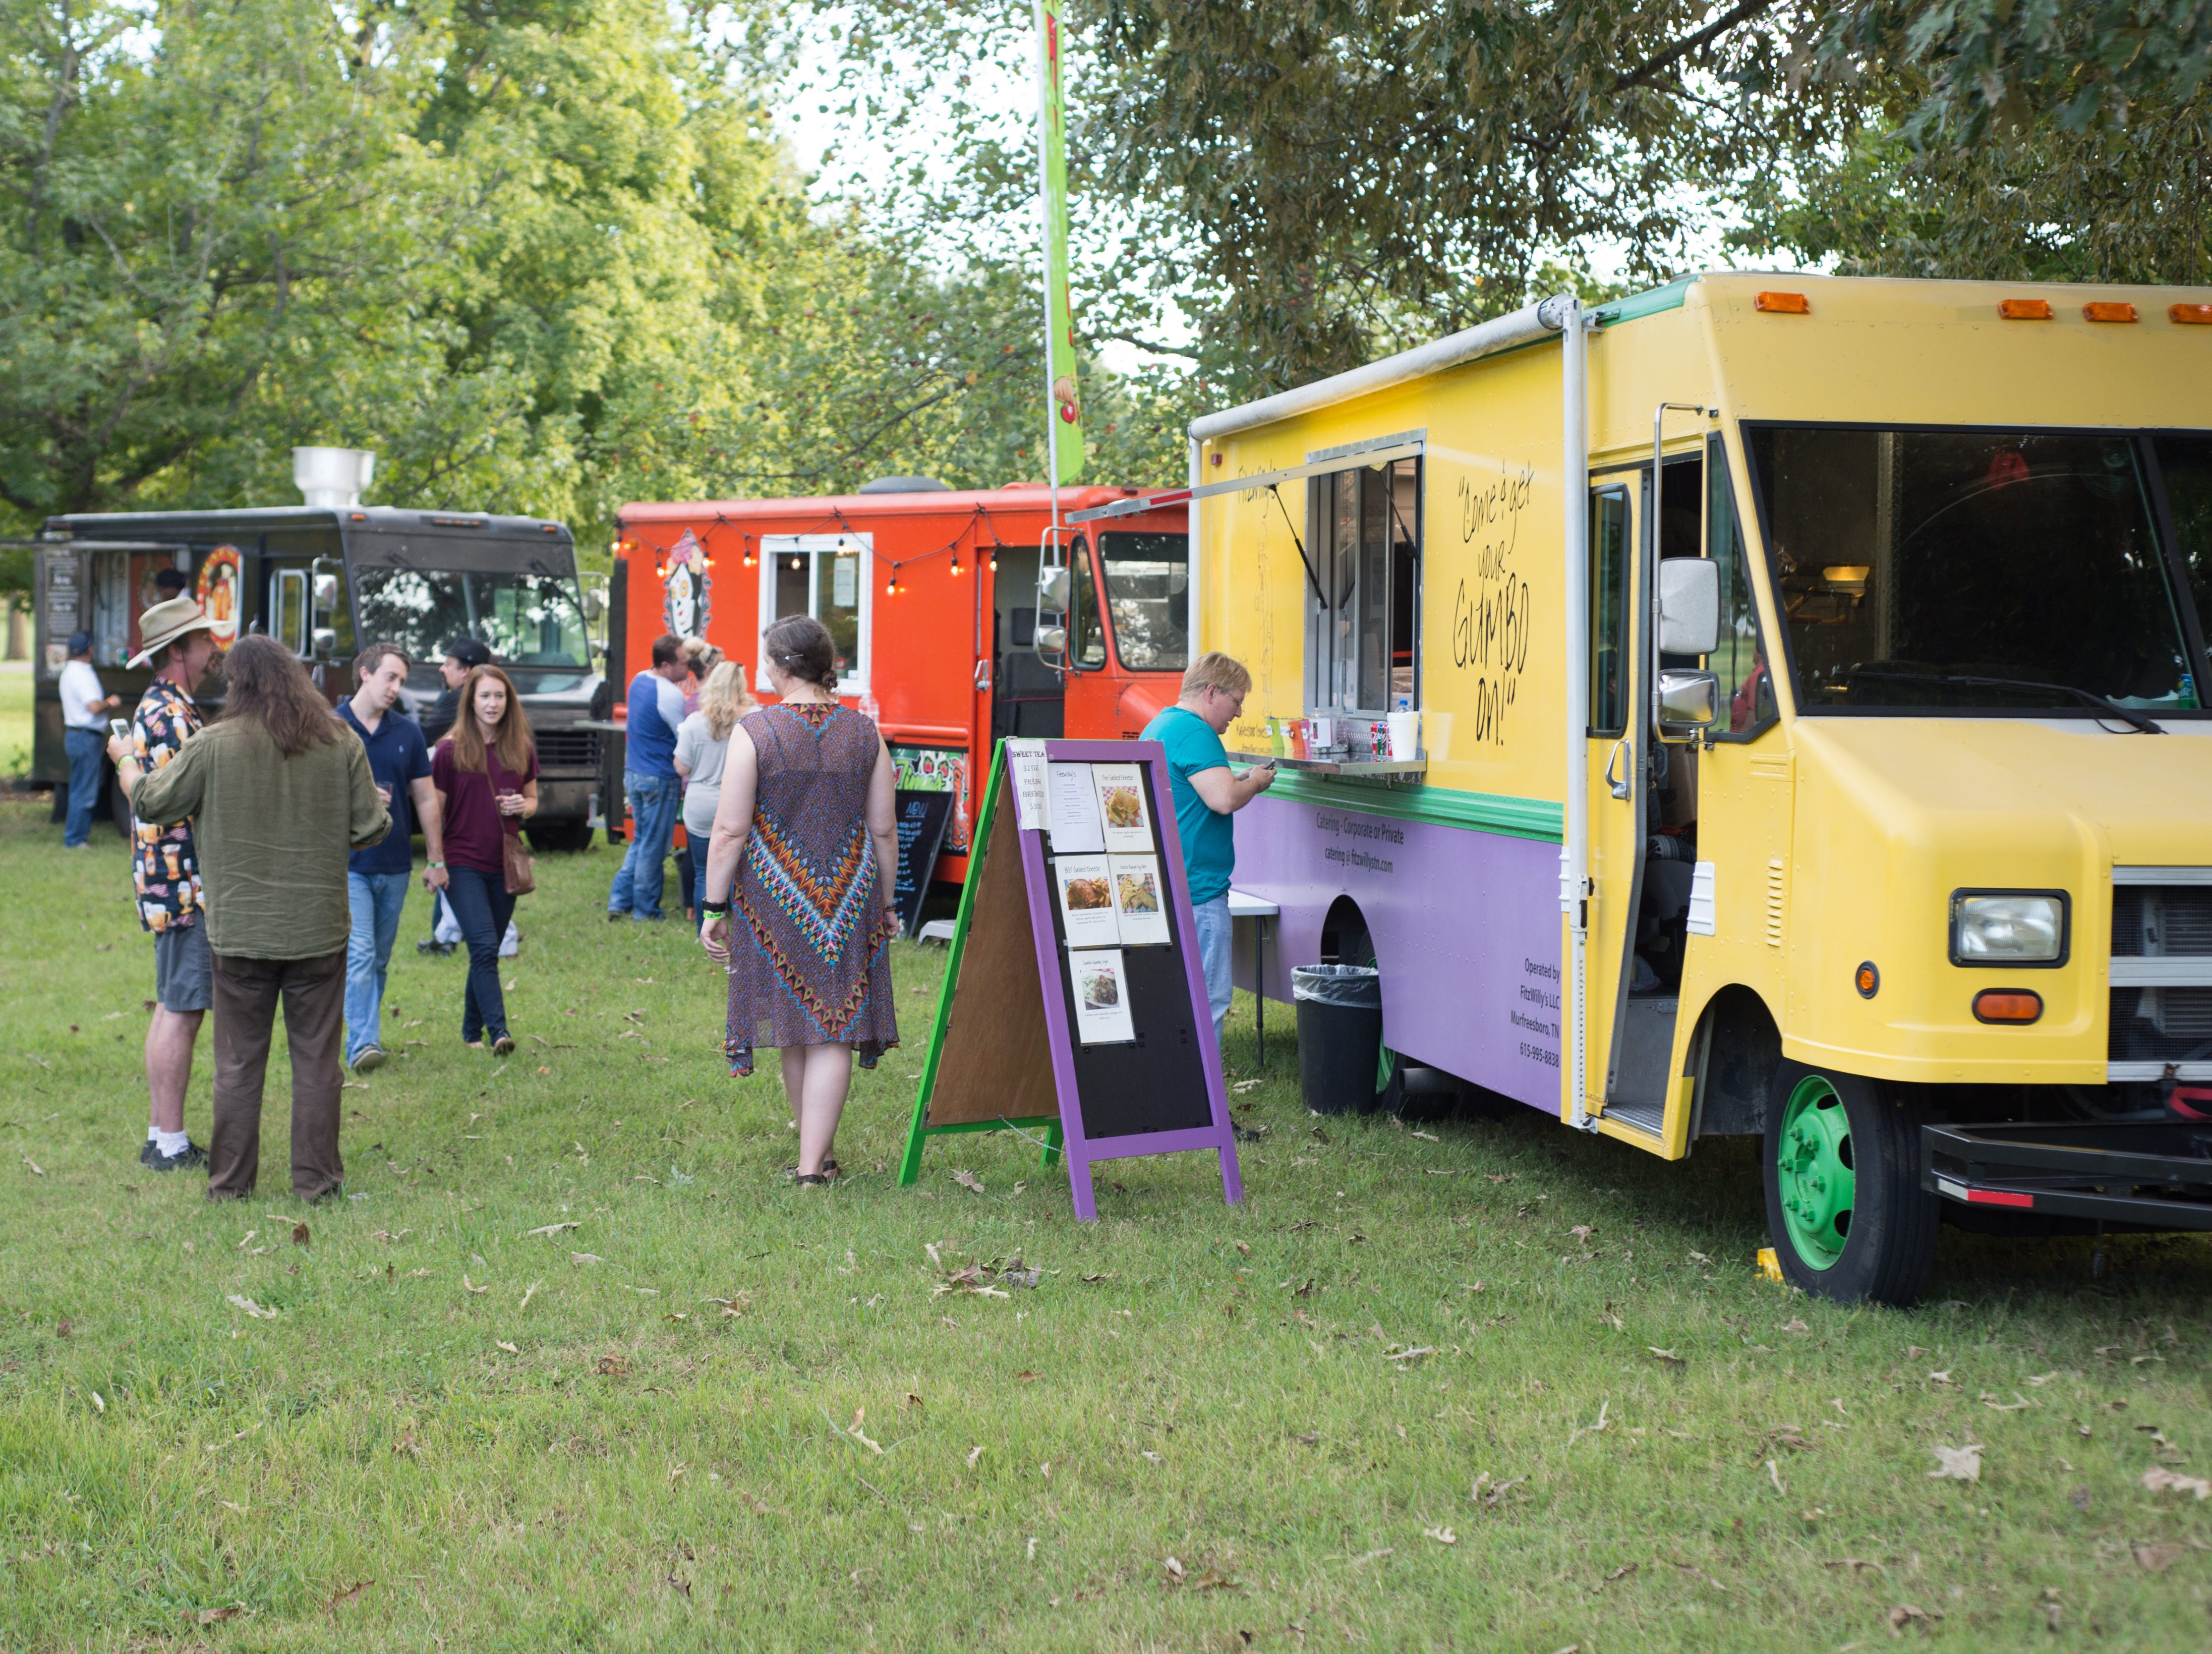 Food trucks add more flavor to Oktoberfest at Oaklands Mansion in Murfreesboro on Saturday, Sept. 29.